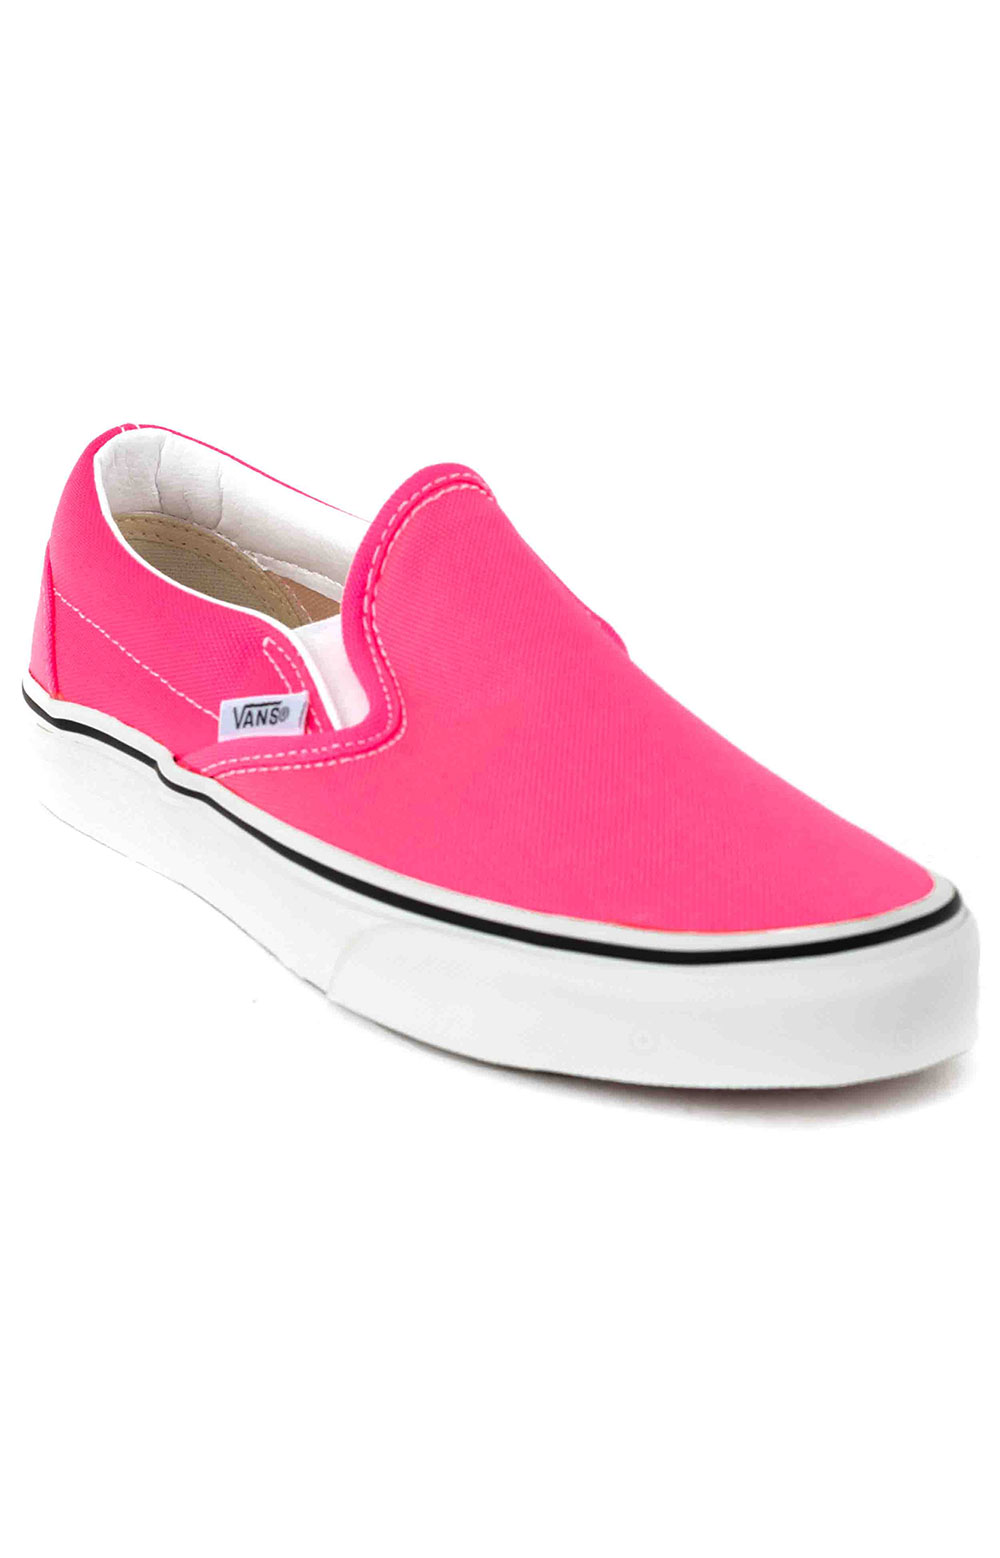 (U38WT6) Neon Classic Slip-On Shoes - Knockout Pink 3